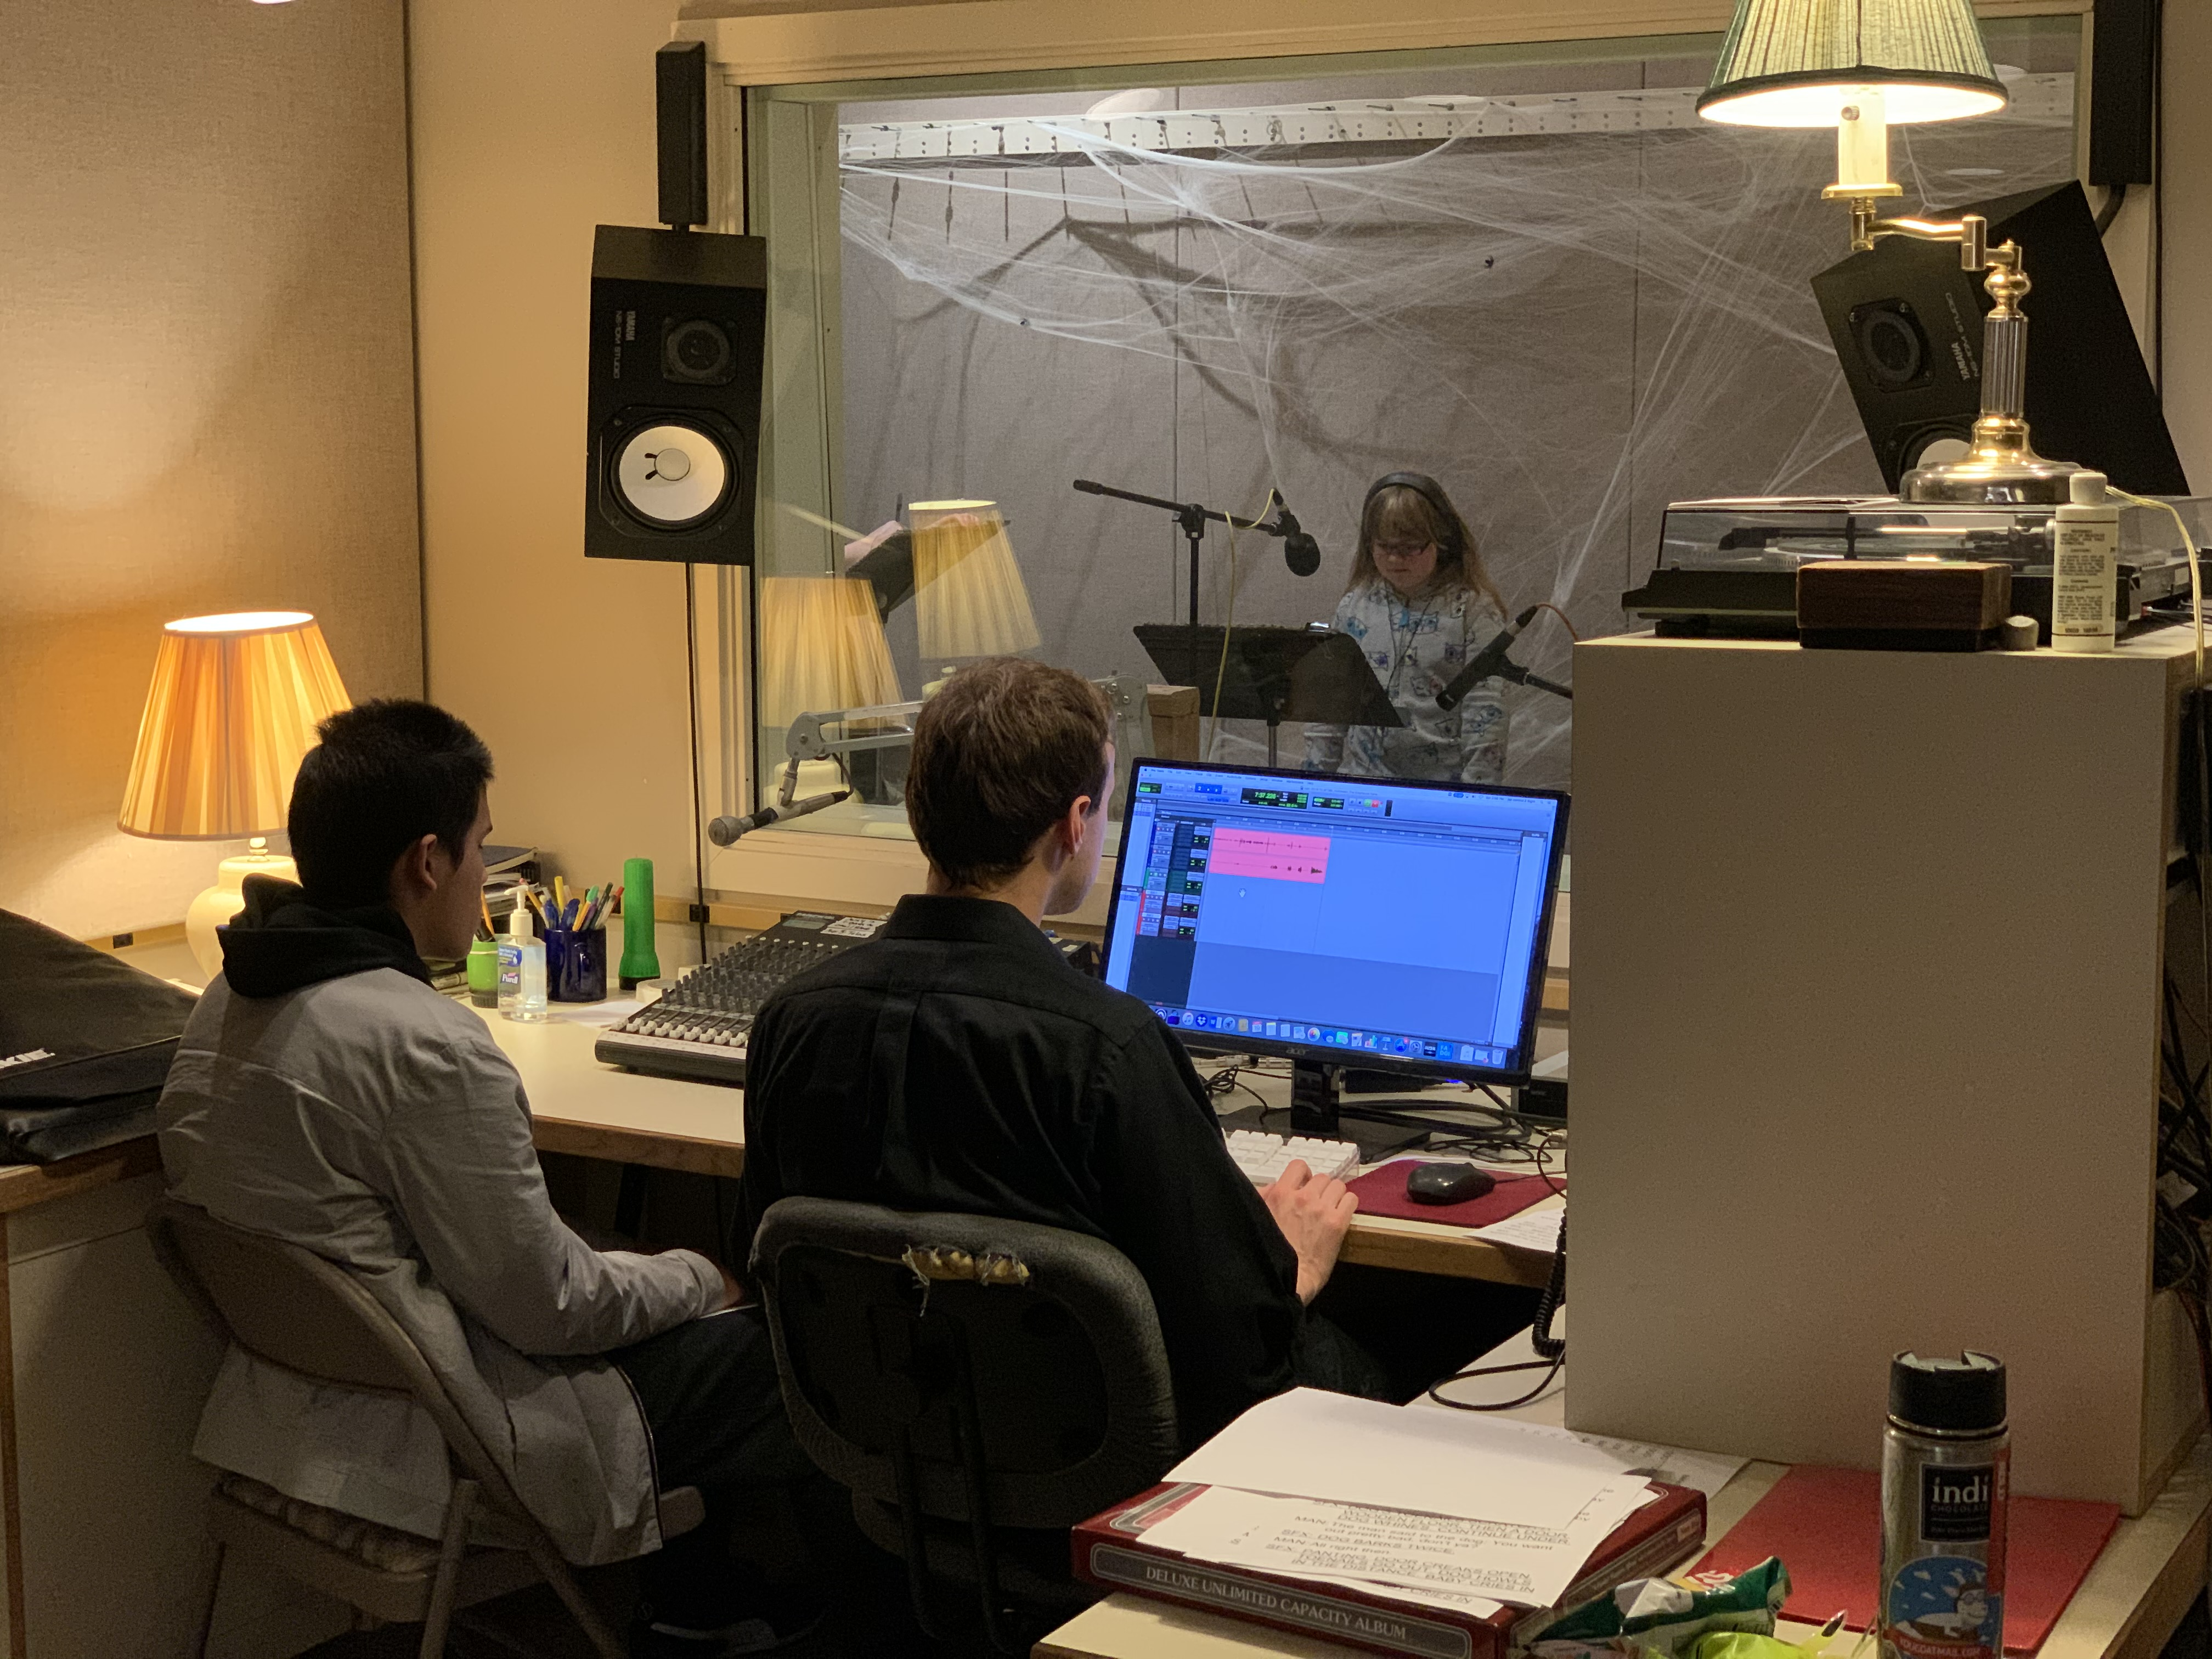 Image shows a voice coach and youth patron in a recording studio, while in the foreground a technician and blind youth patron work on sound levels on the computer.